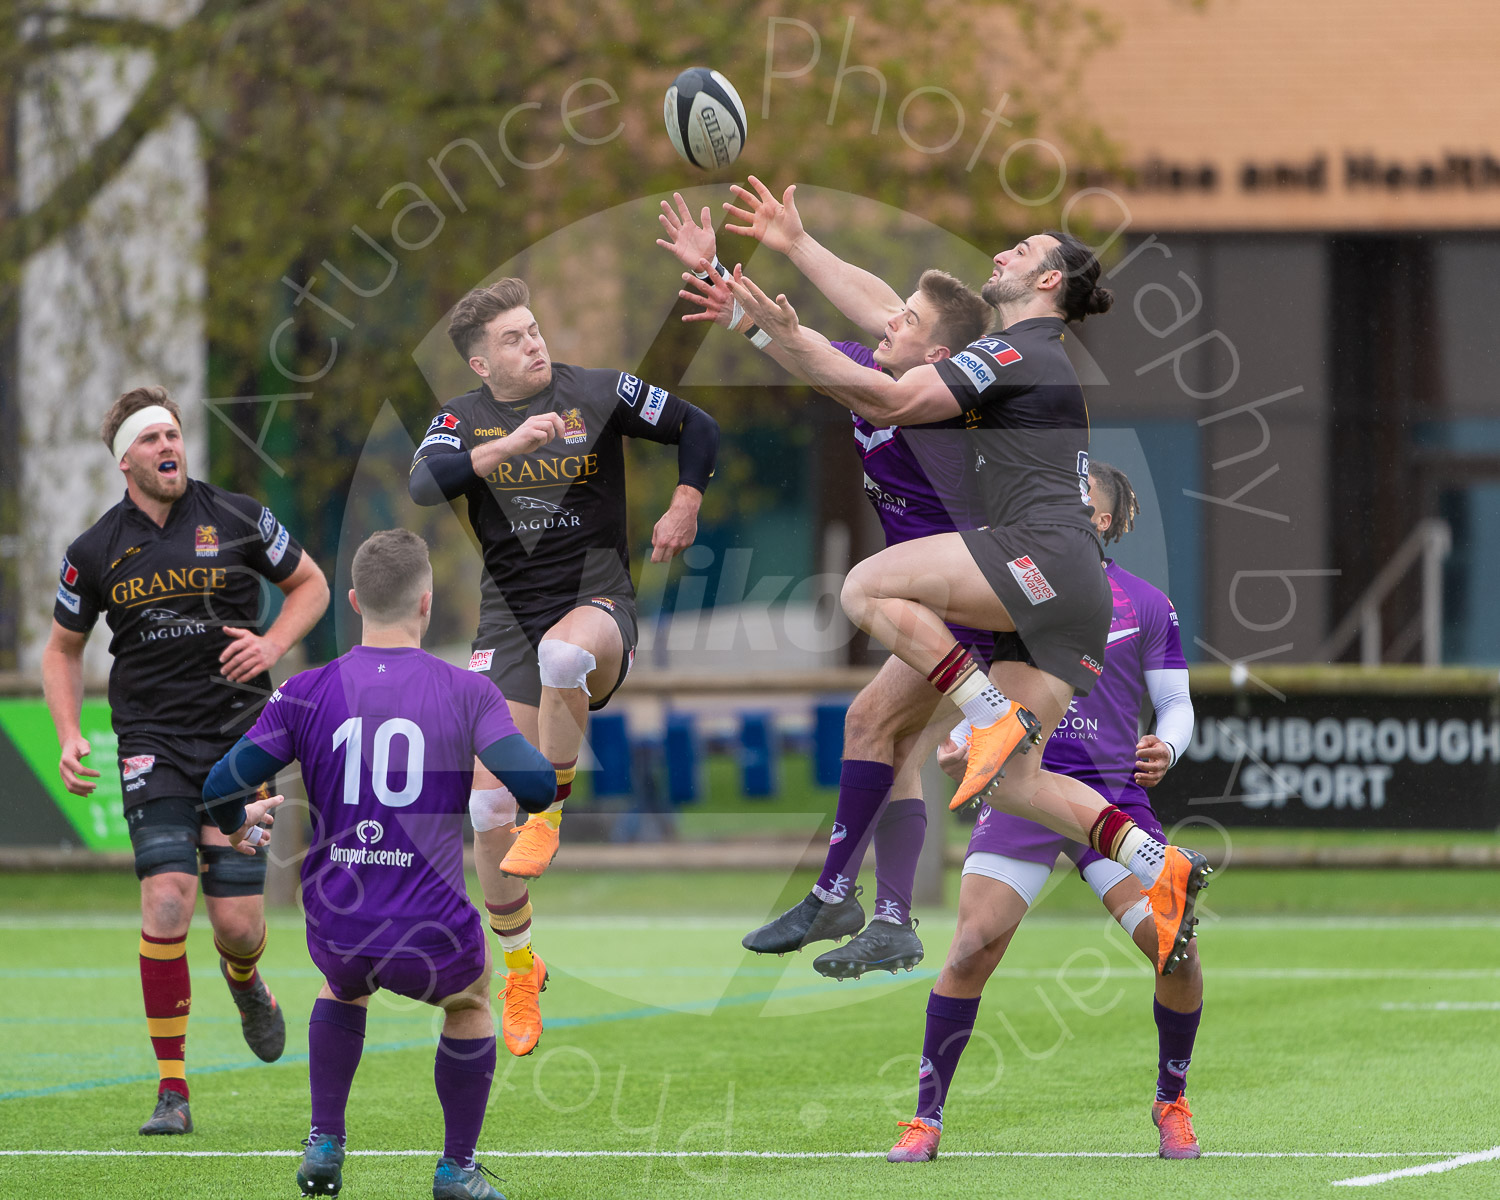 20190427 Loughborough vs Ampthill 1st XV #5930